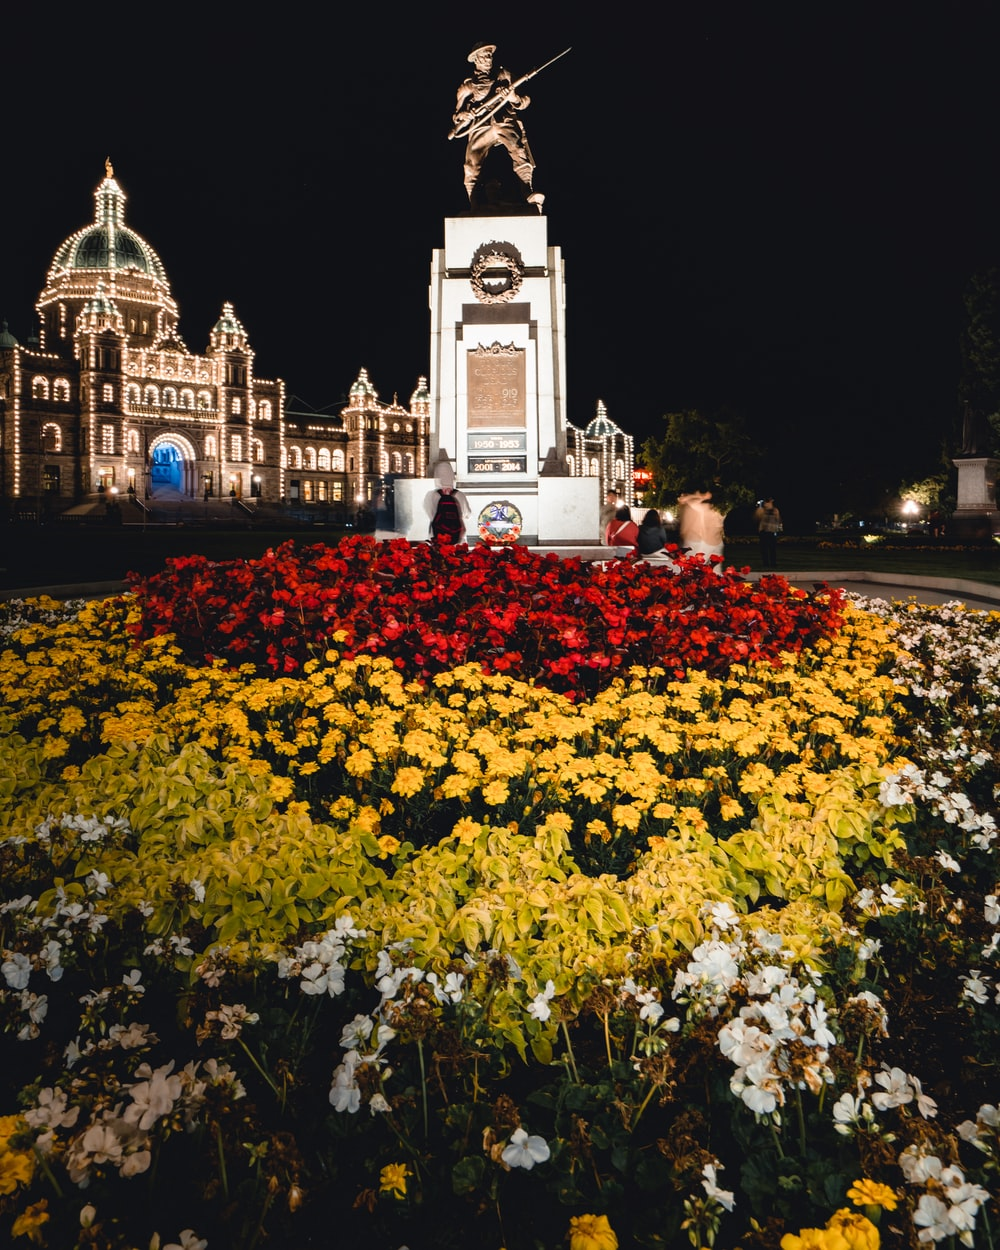 red and yellow flower field in front of the statue